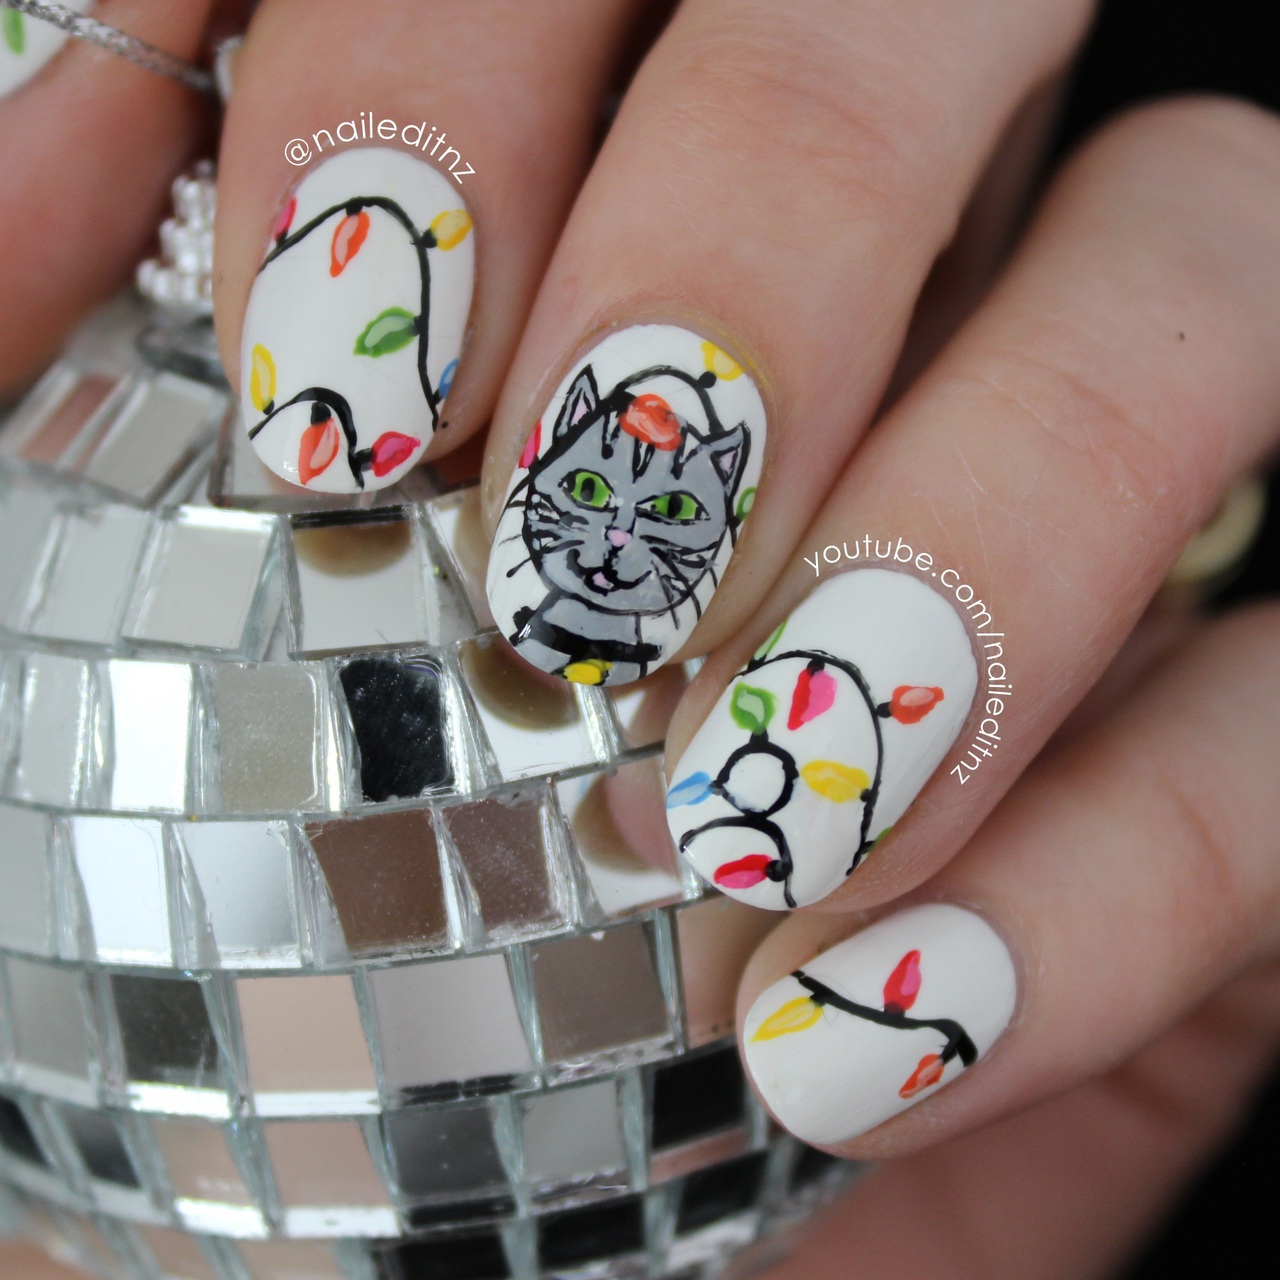 Subscribe to Nailed It NZ on YouTube for heaps of nail art